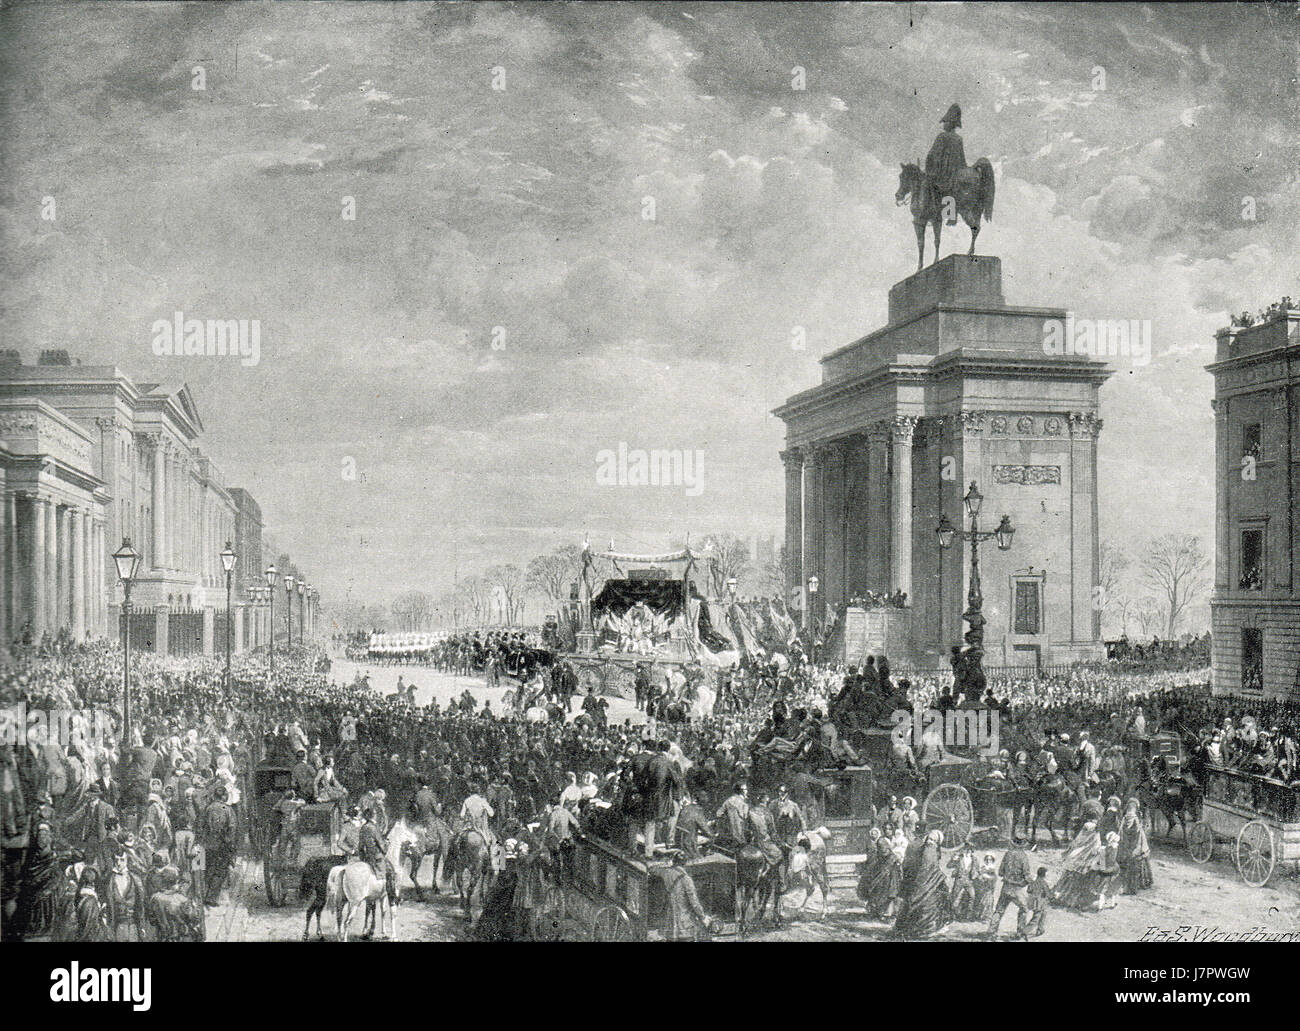 State Funeral of the Duke of Wellington 1852 - Stock Image